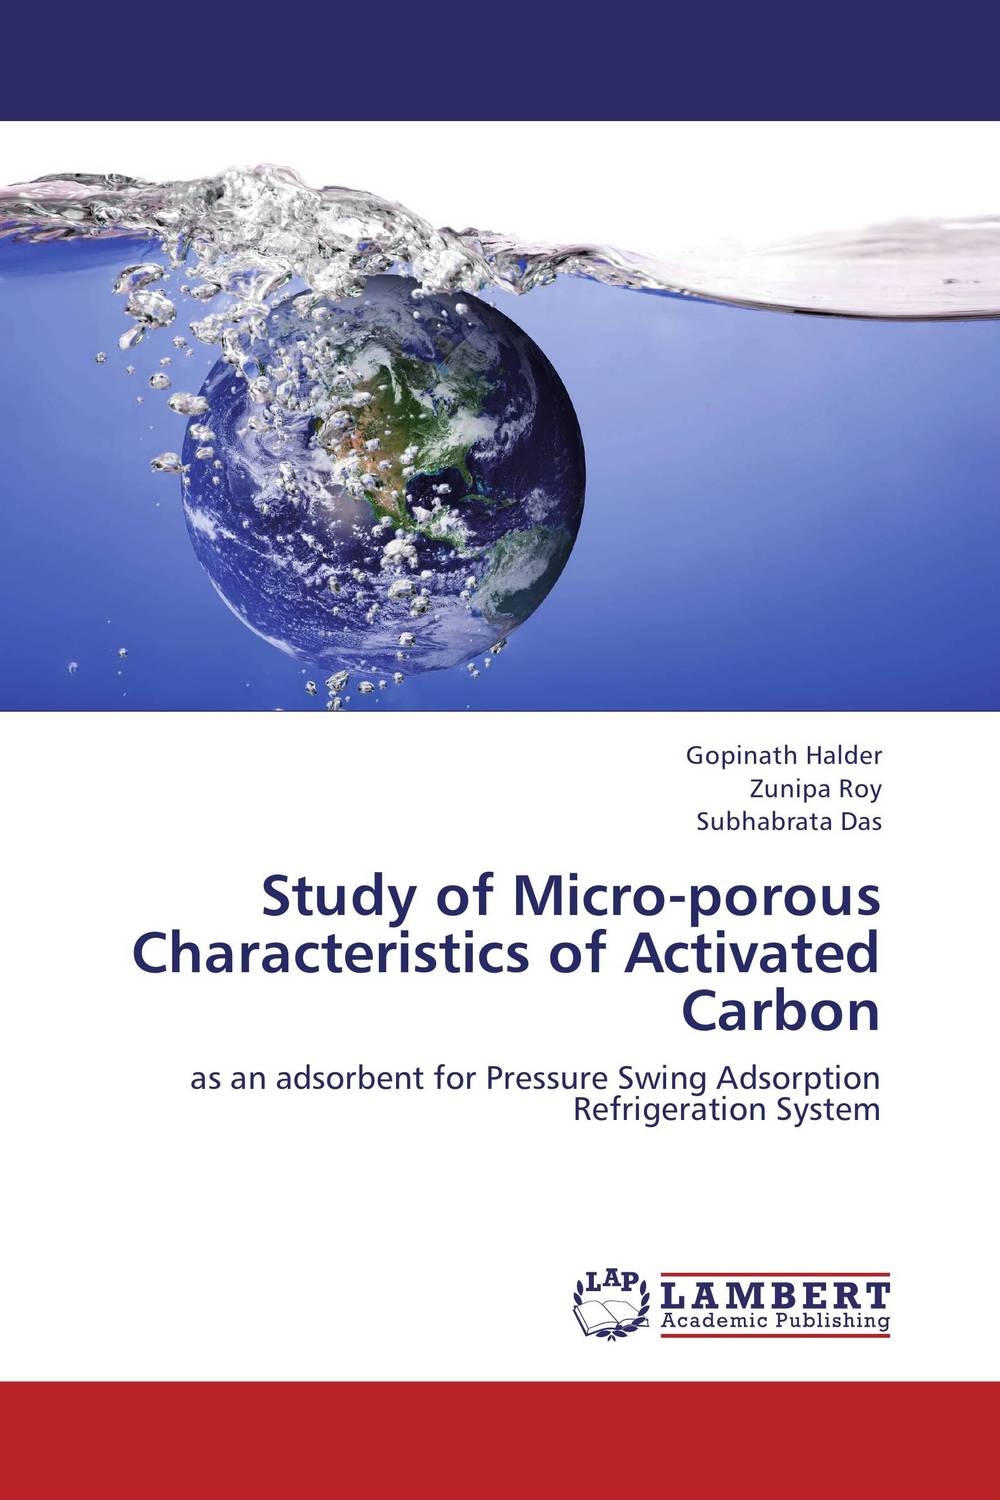 Study of Micro-porous Characteristics of Activated Carbon thermodynamic and economic evaluation of co2 refrigeration systems